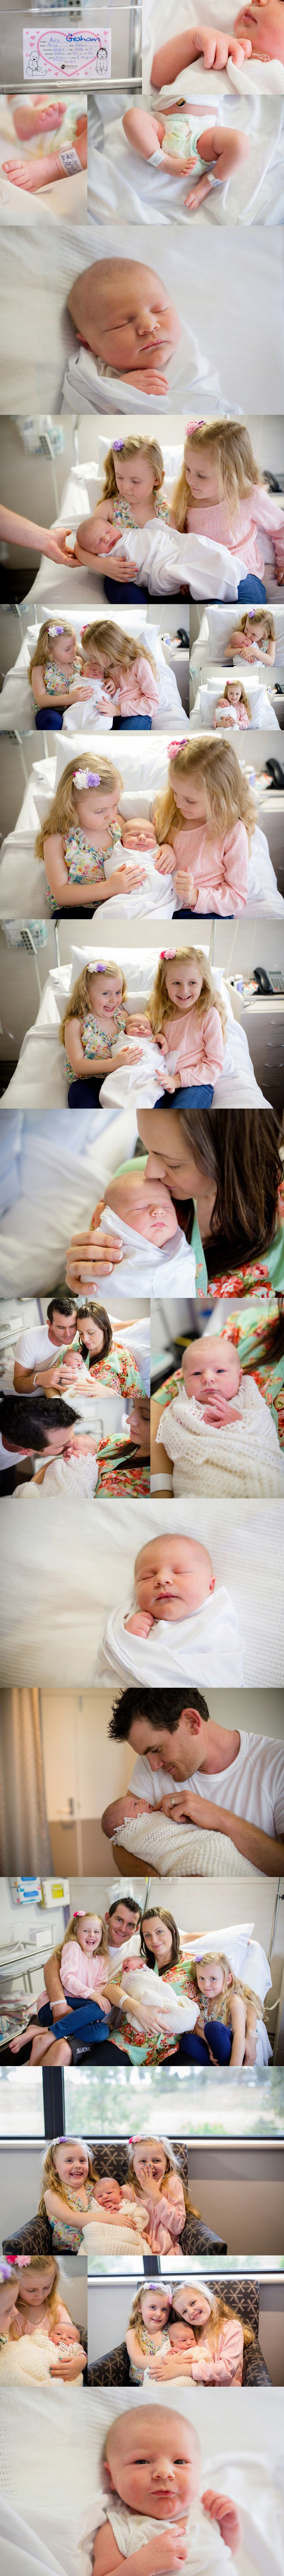 Hills District & North Shore Newborn photographer, specialising in Hospital Newborn Photos (also called First Look or Fresh 48 Sessions), at Norwest Private, The SAN, Hornsby, Hawkesbury, Westmead Private, The Mater & North Shore Private.